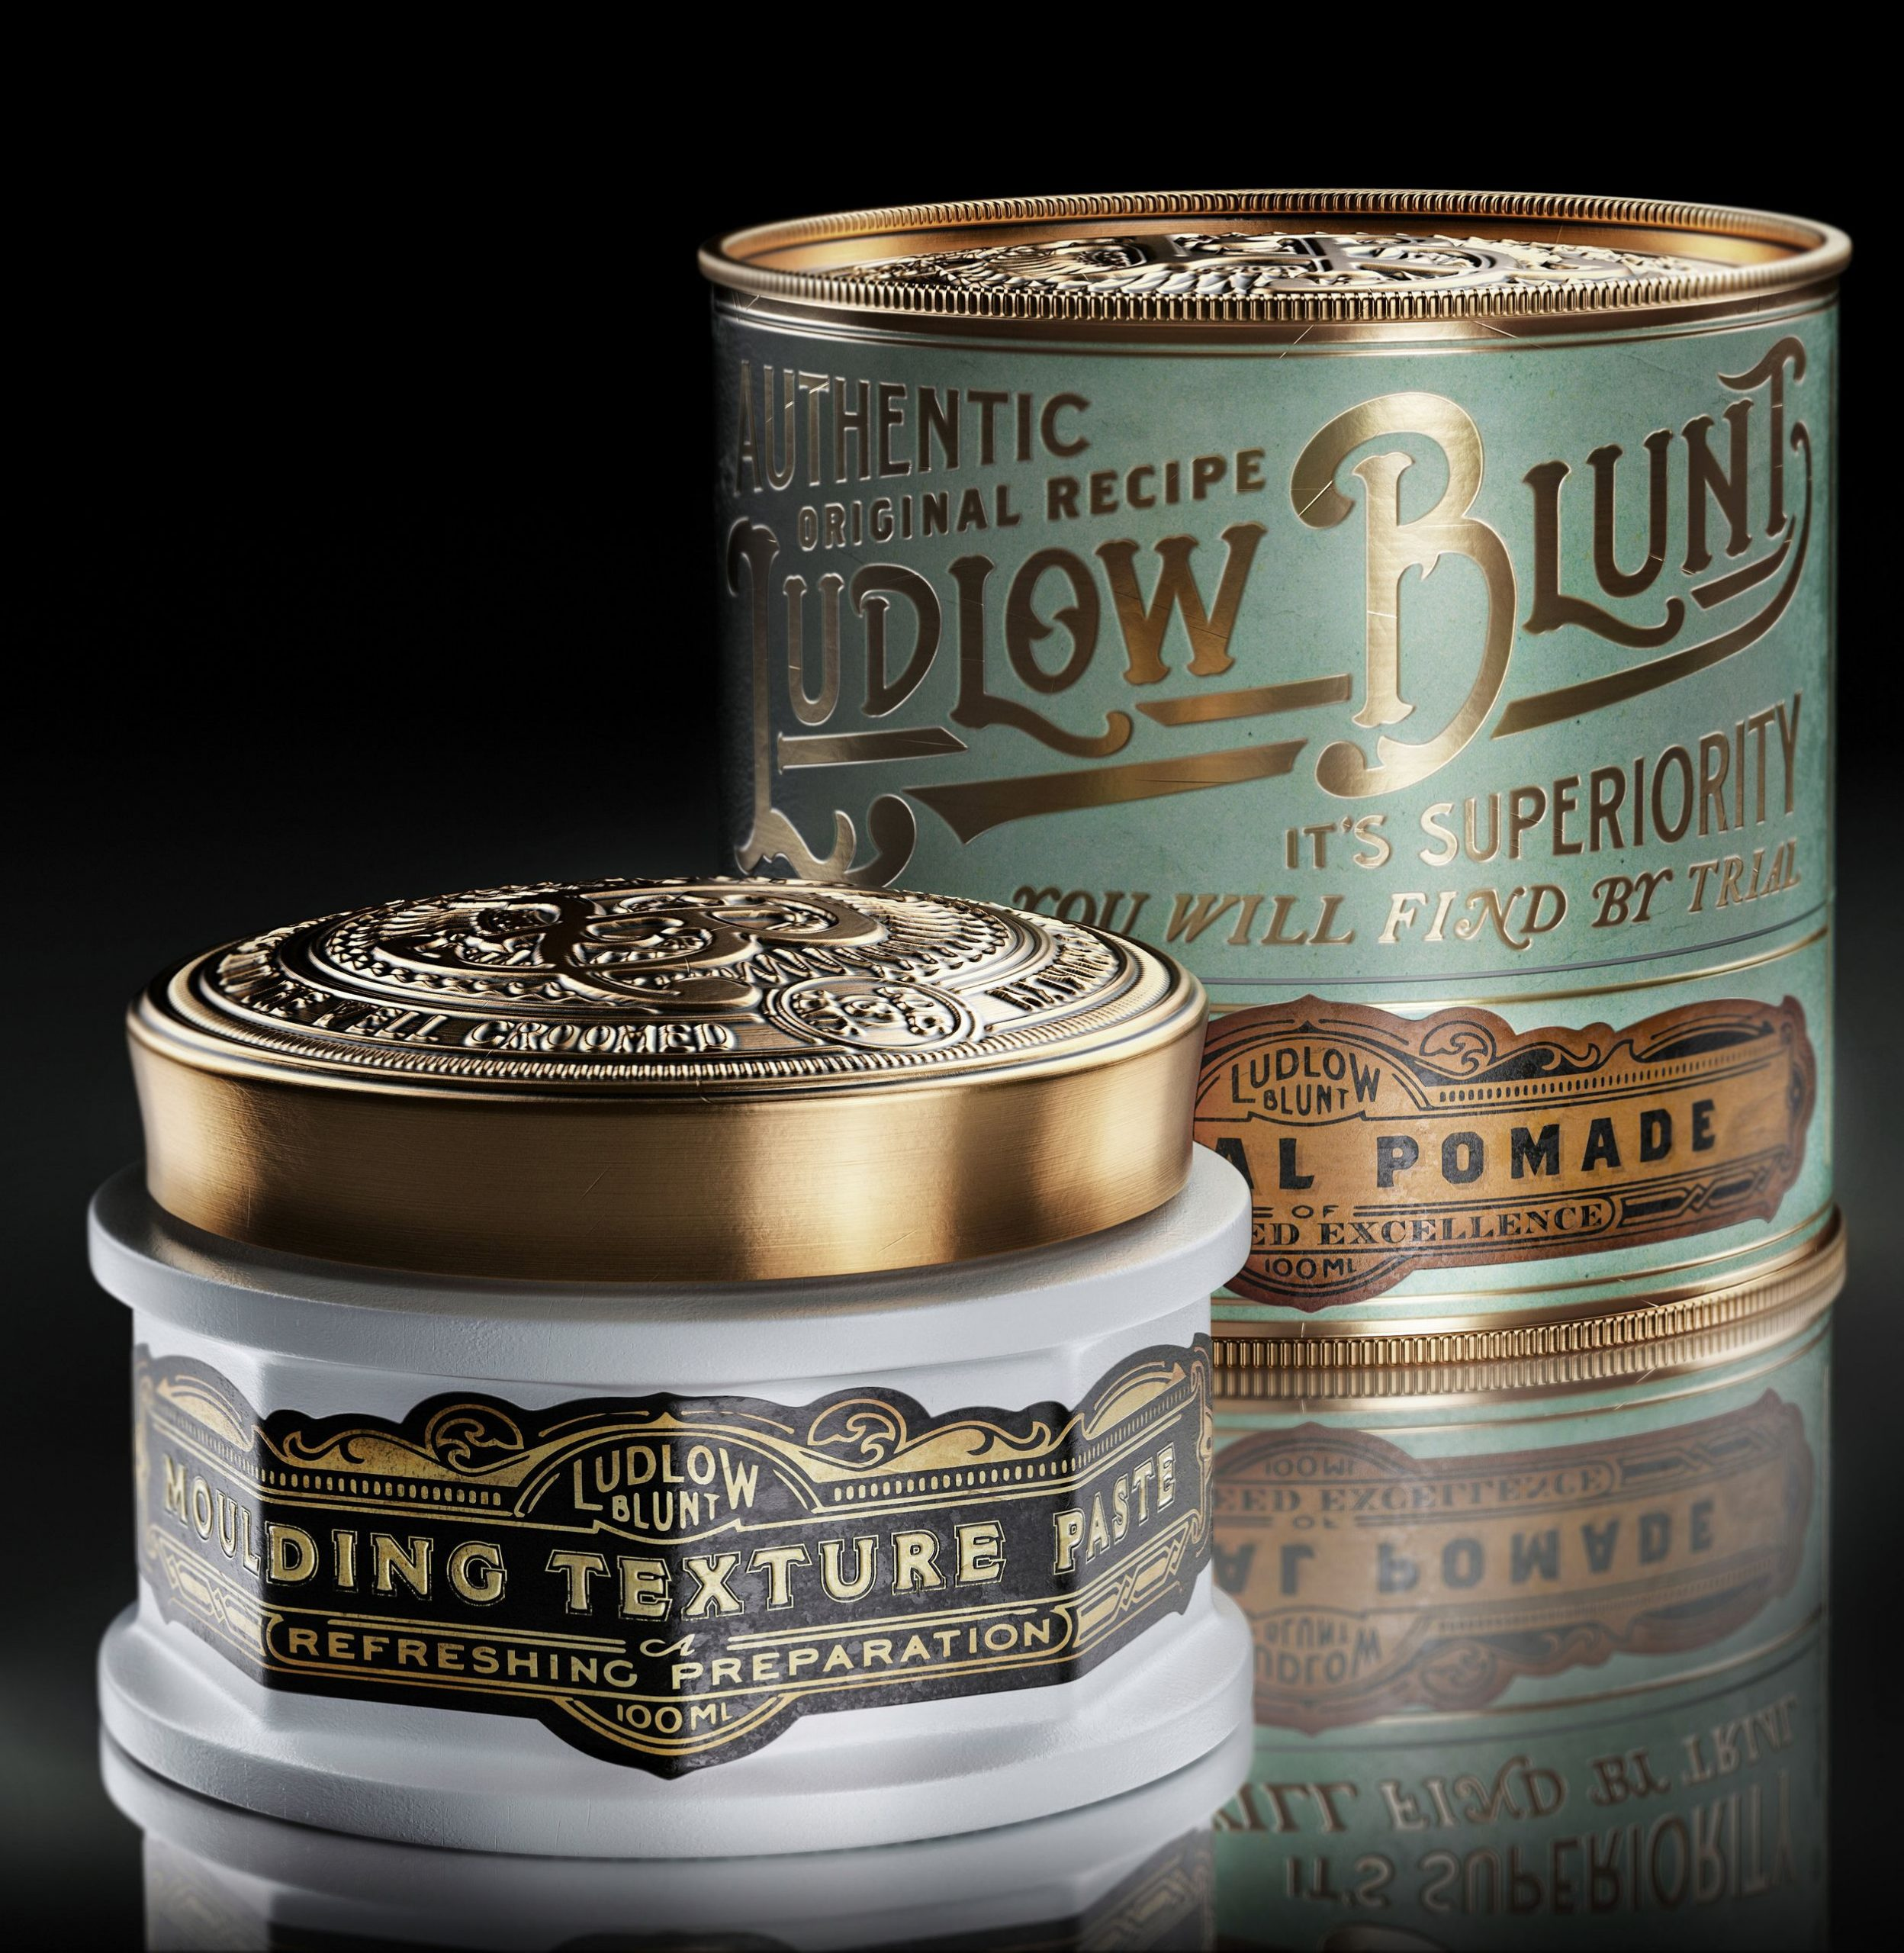 Men's grooming products with awesome packaging #packaging #package #packagingdes...